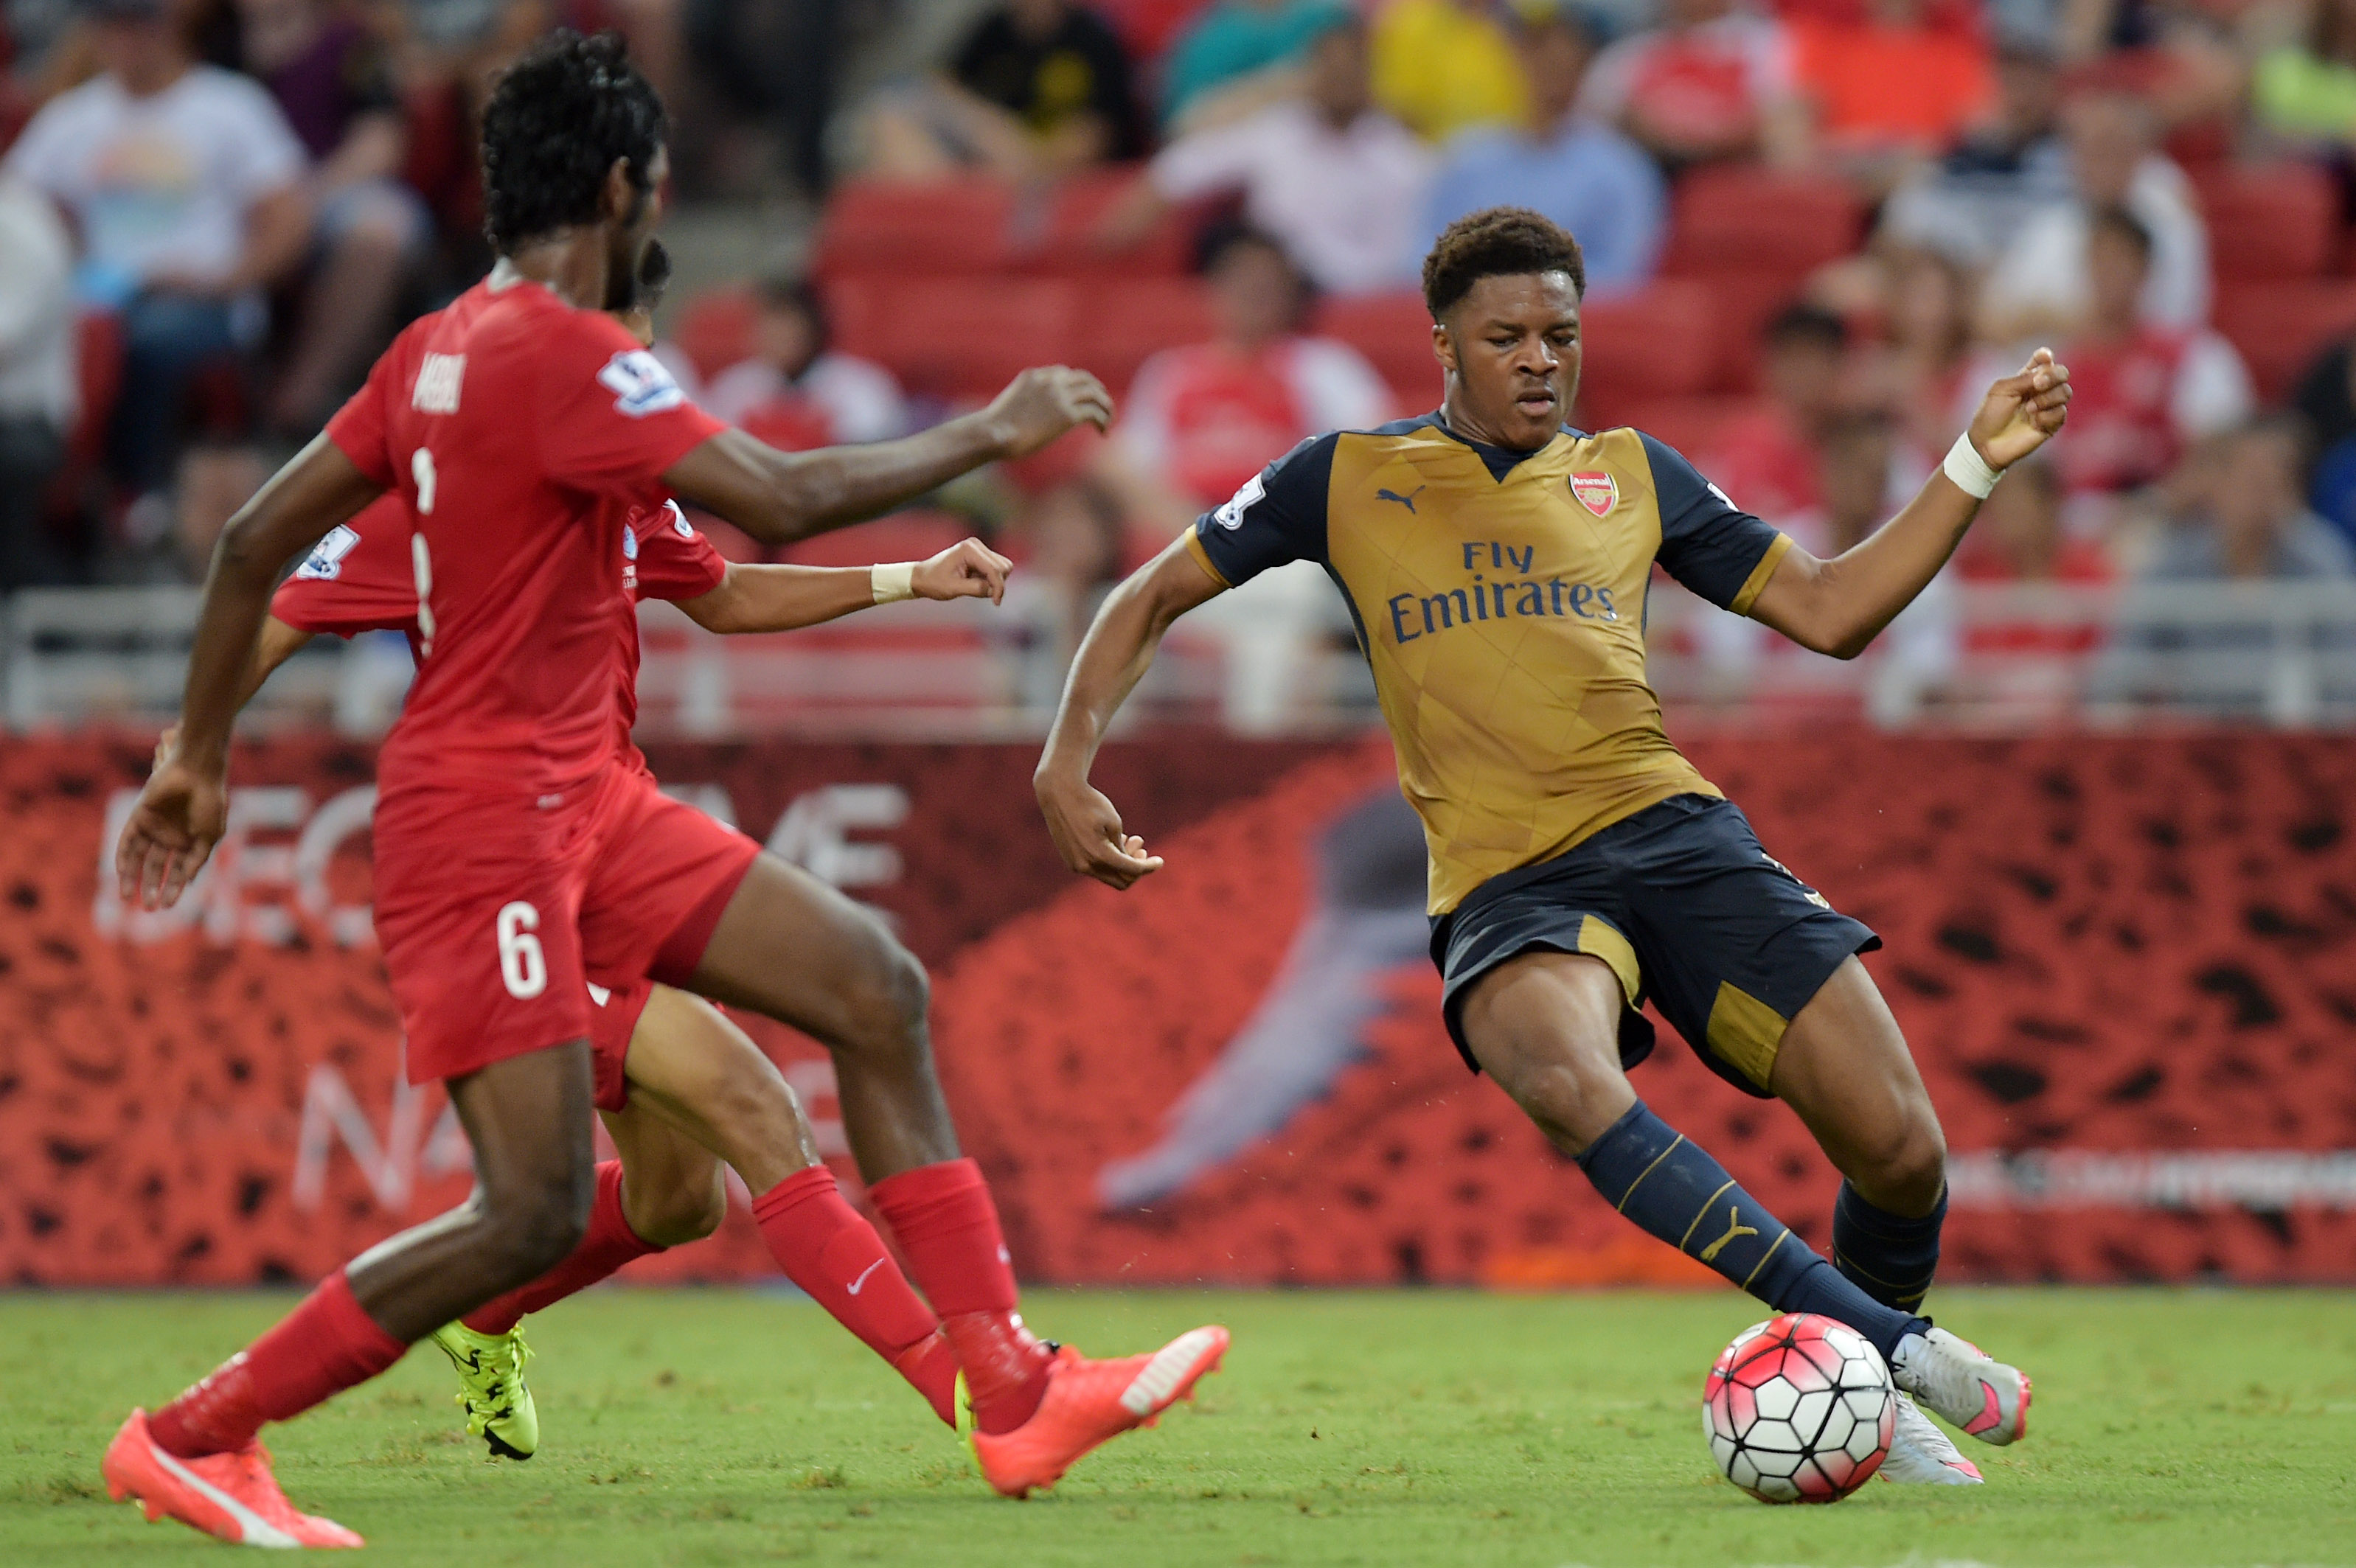 Arsenal's Chuba Akpom (right) dribbles past Singapore Selection Xl's Madhu Mohana (left) during their Barclays Asia Trophy football match at the Singapore National Stadium on Wednesday. Arsenal won the match 4-0. Photo: AP